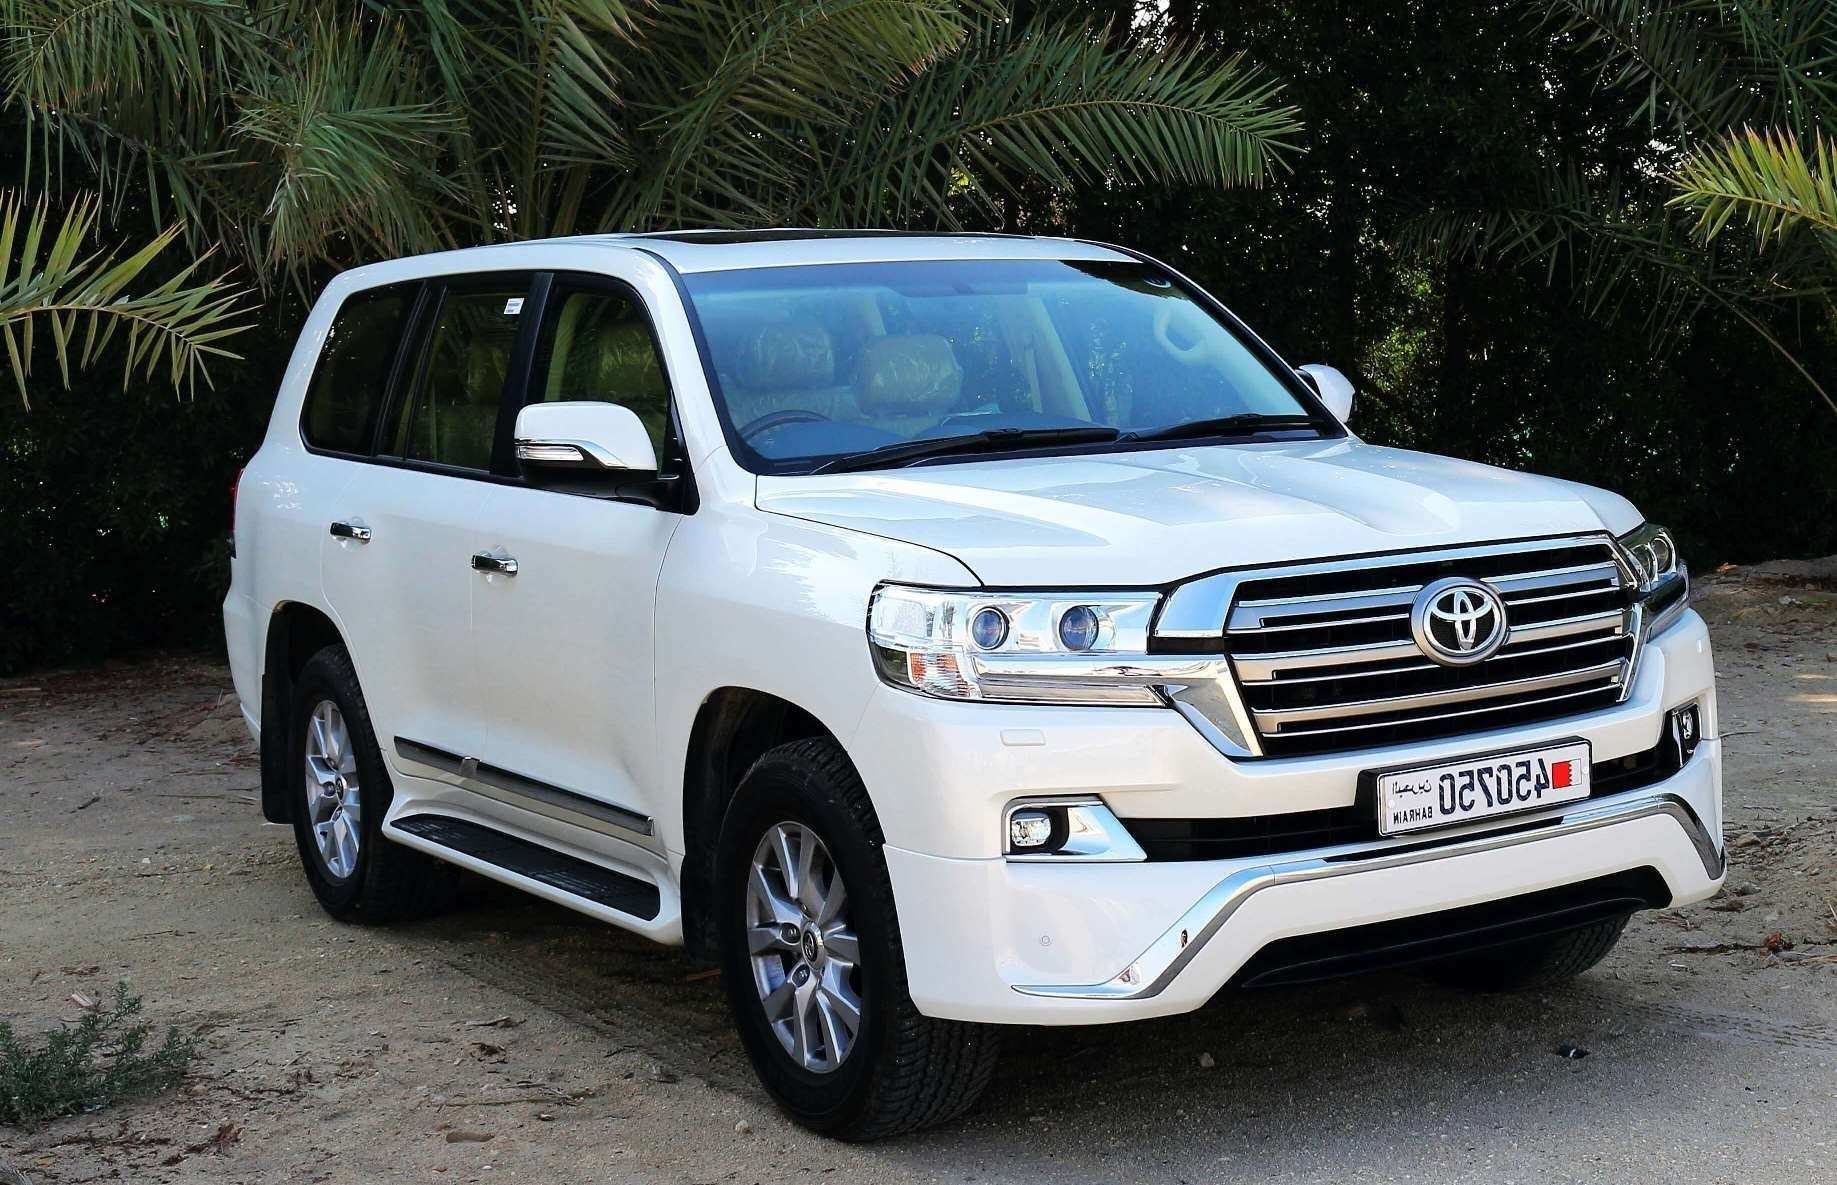 34 Great 2019 Toyota Land Cruiser 300 Performance with 2019 Toyota Land Cruiser 300